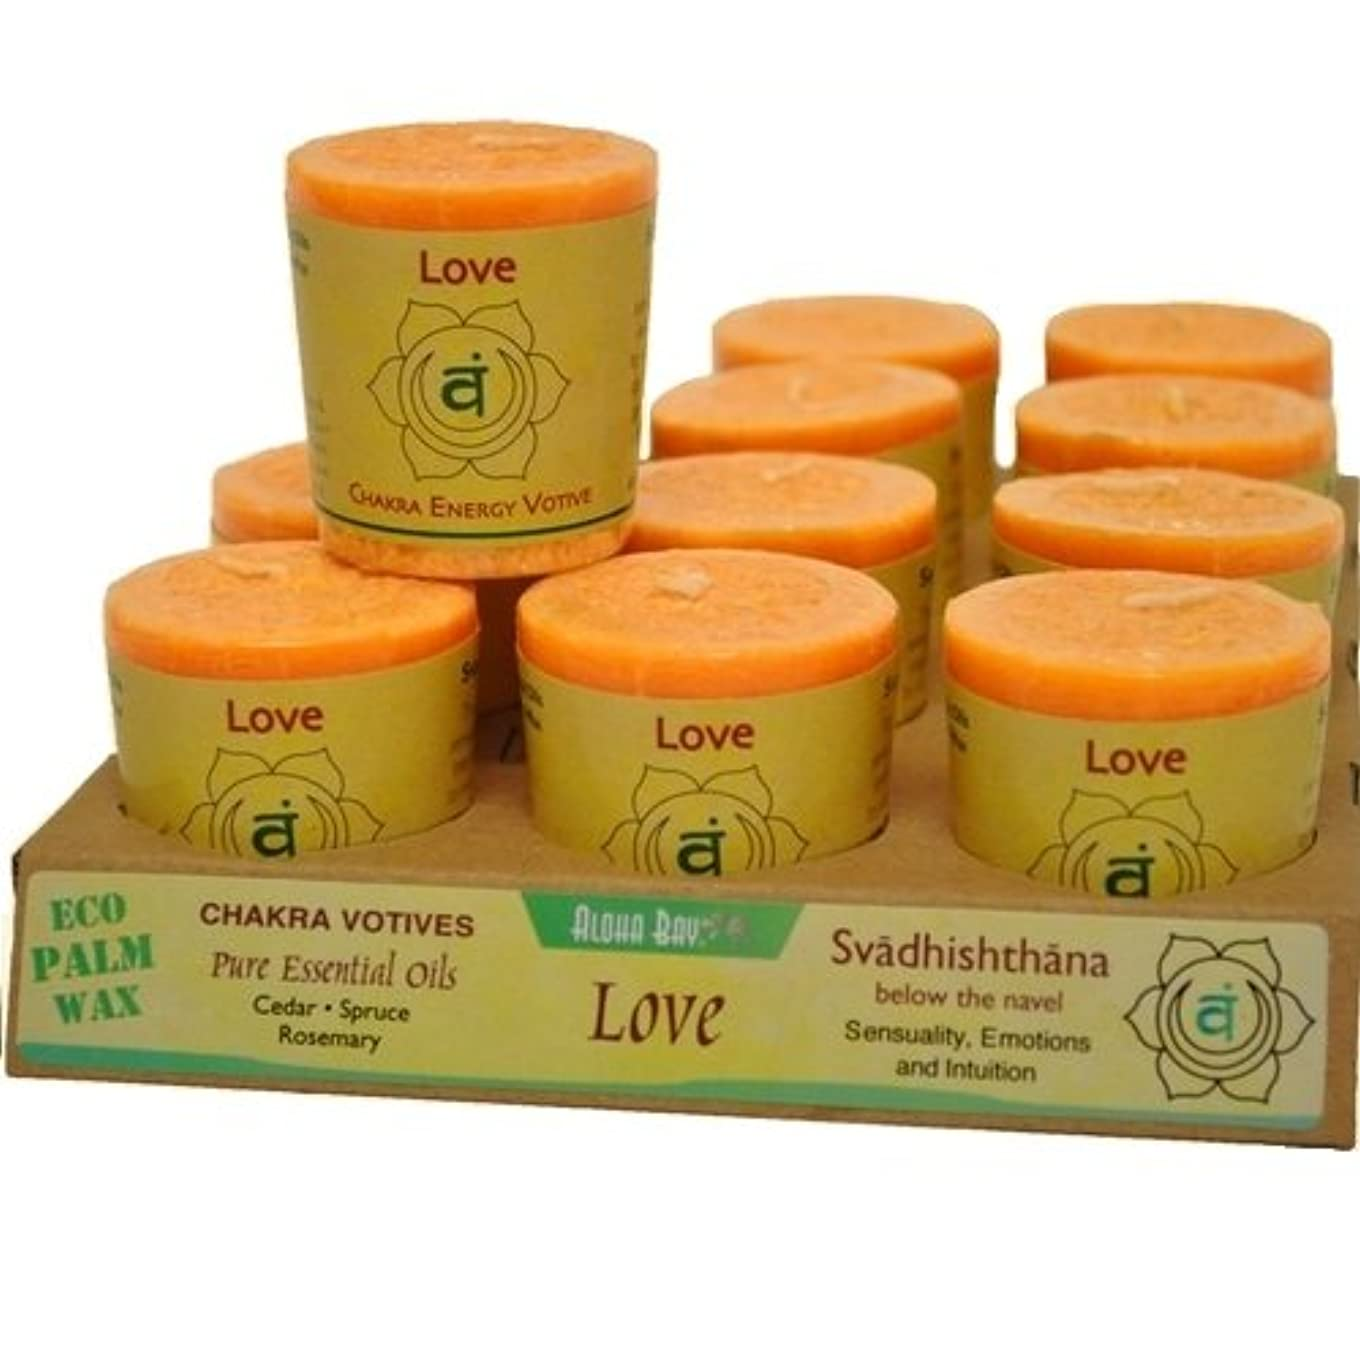 Aloha Bay 284927 Aloha Bay Chakra Votive Canlde - Love - Case of 12 - 2 oz